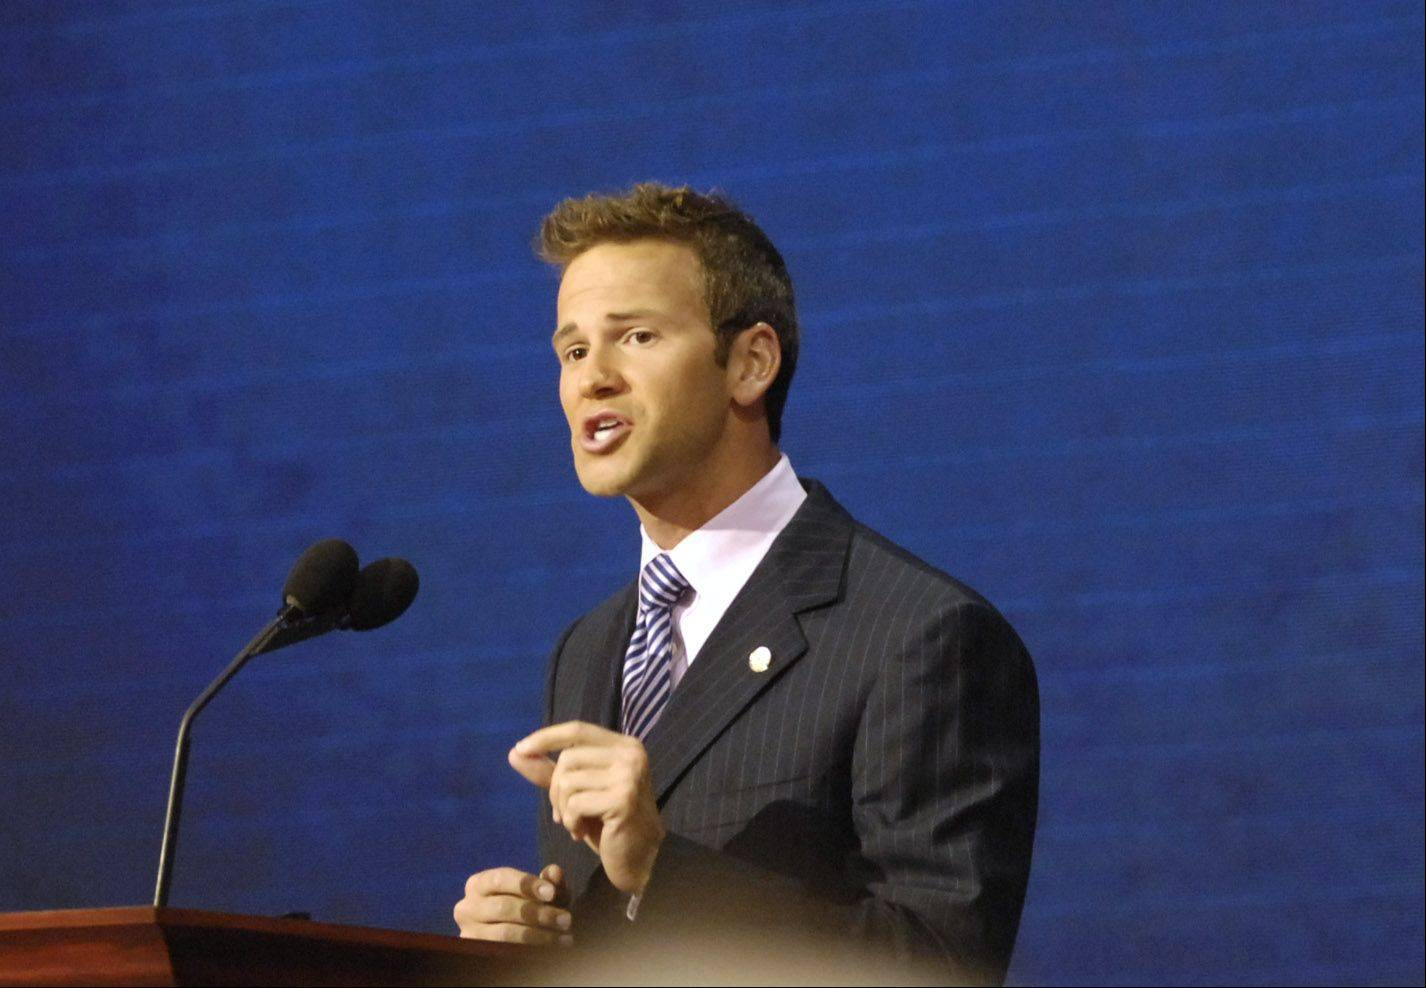 Schock to Illinois delegates: GOP can learn from Madigan